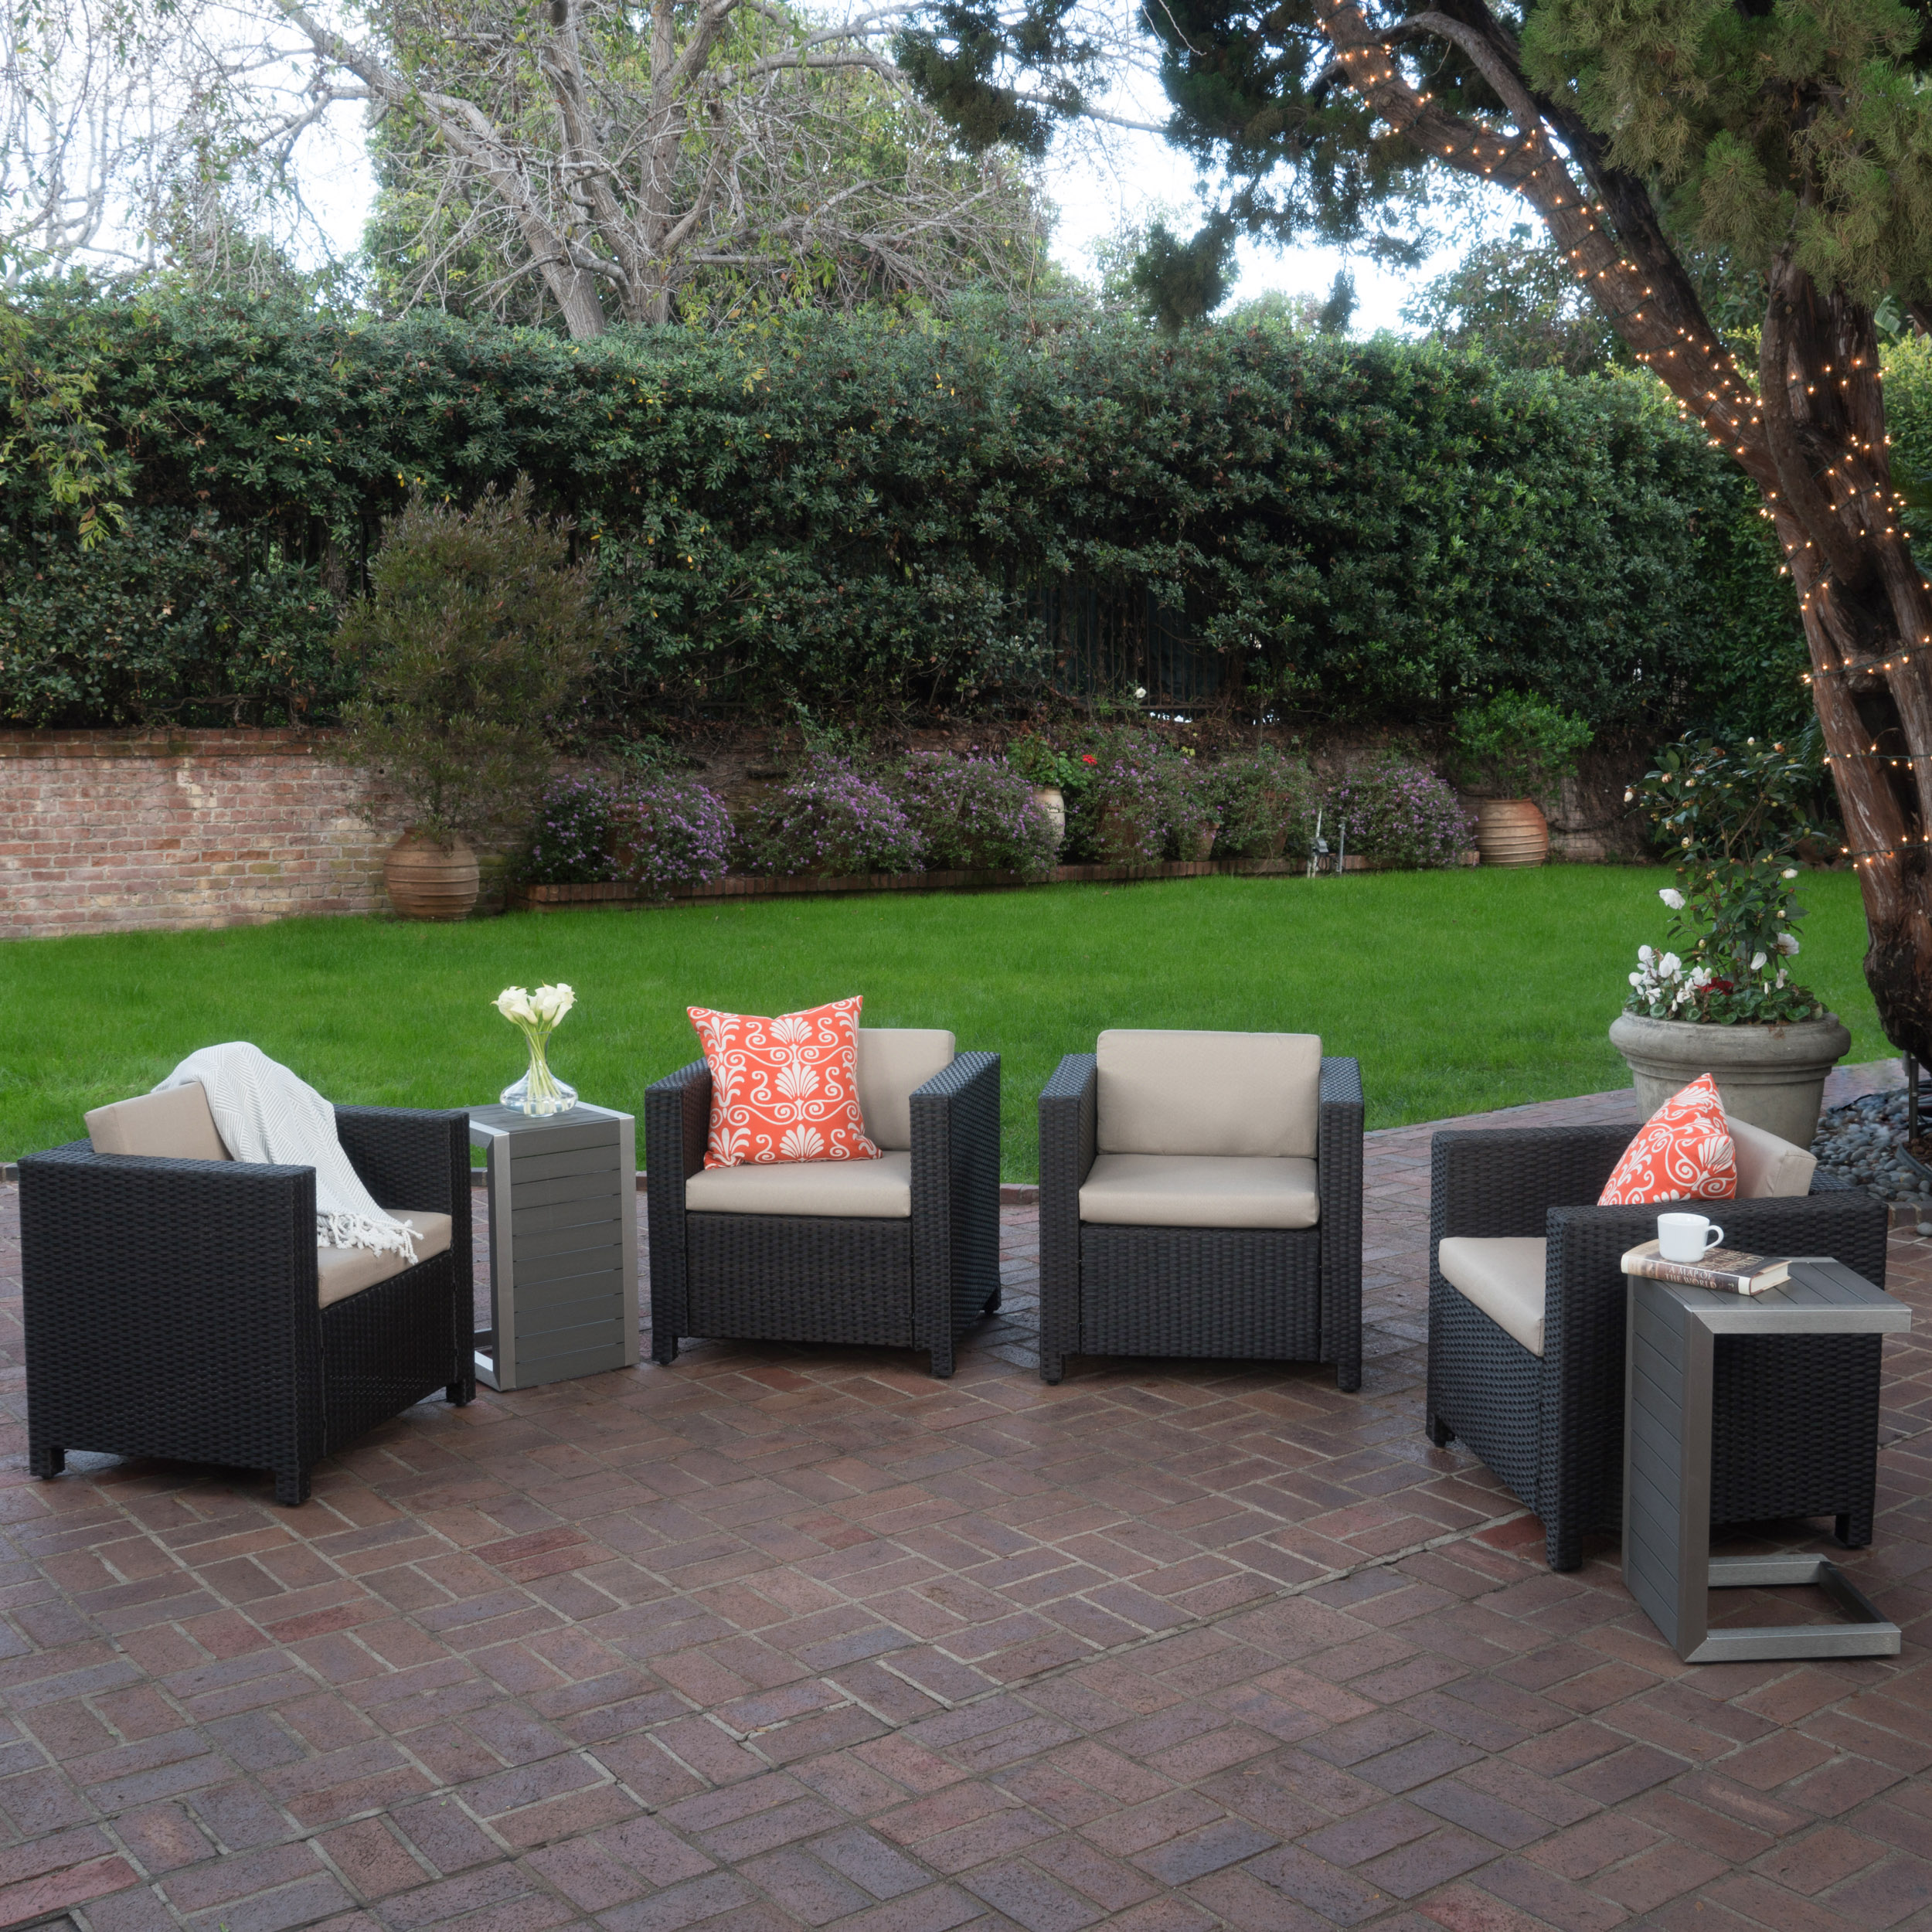 Cascada Outdoor 4 Piece Wicker Club Chairs with Cushions and 2 Natural Finish Polymer Blended Wood C-Shaped Tables, Dark Brown, Beige